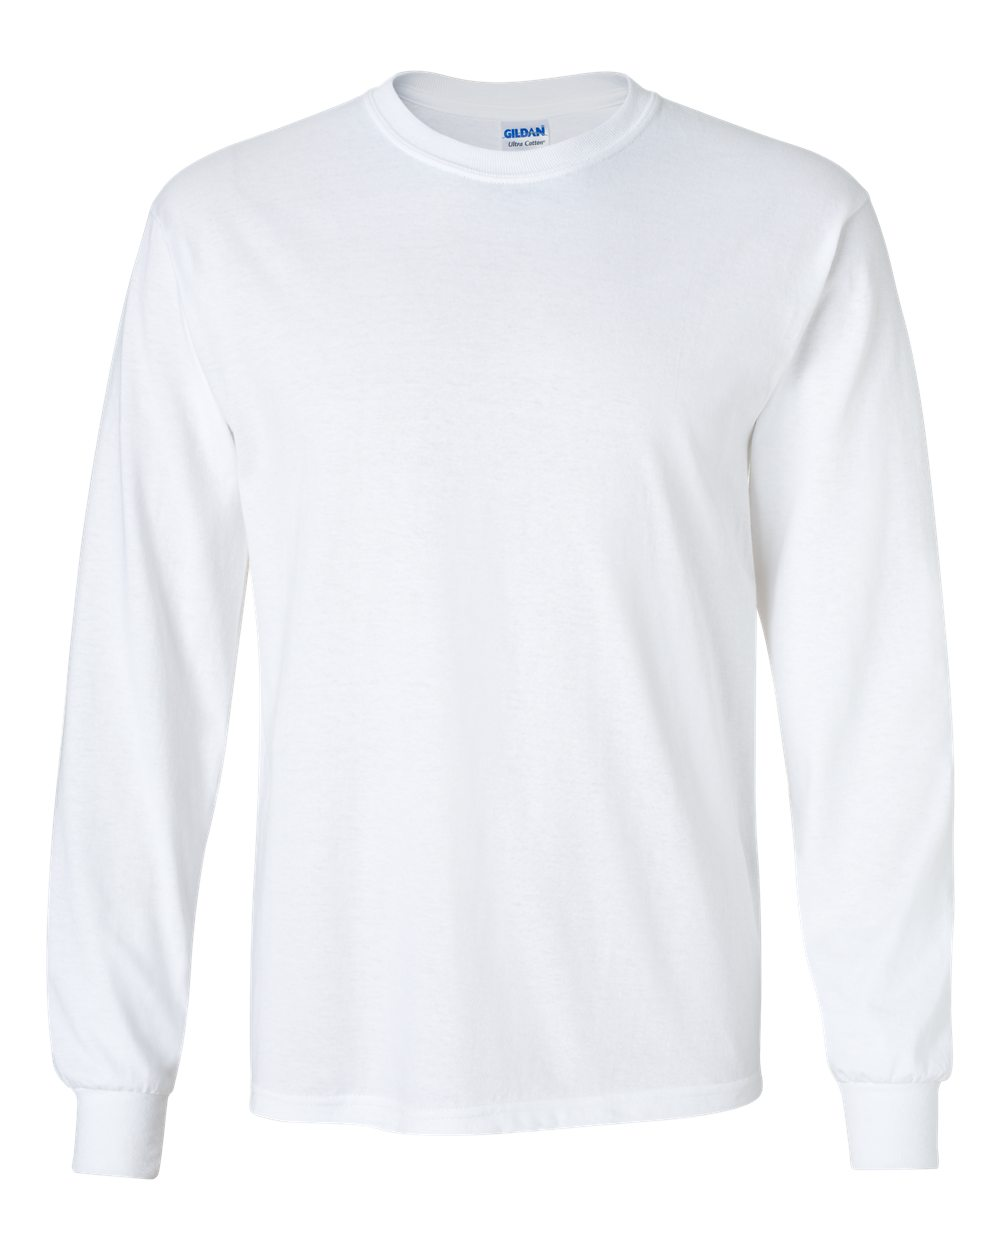 Men s Basic Plain Long Sleeve Shirt  WHITE (XXL)  1347f8644b1